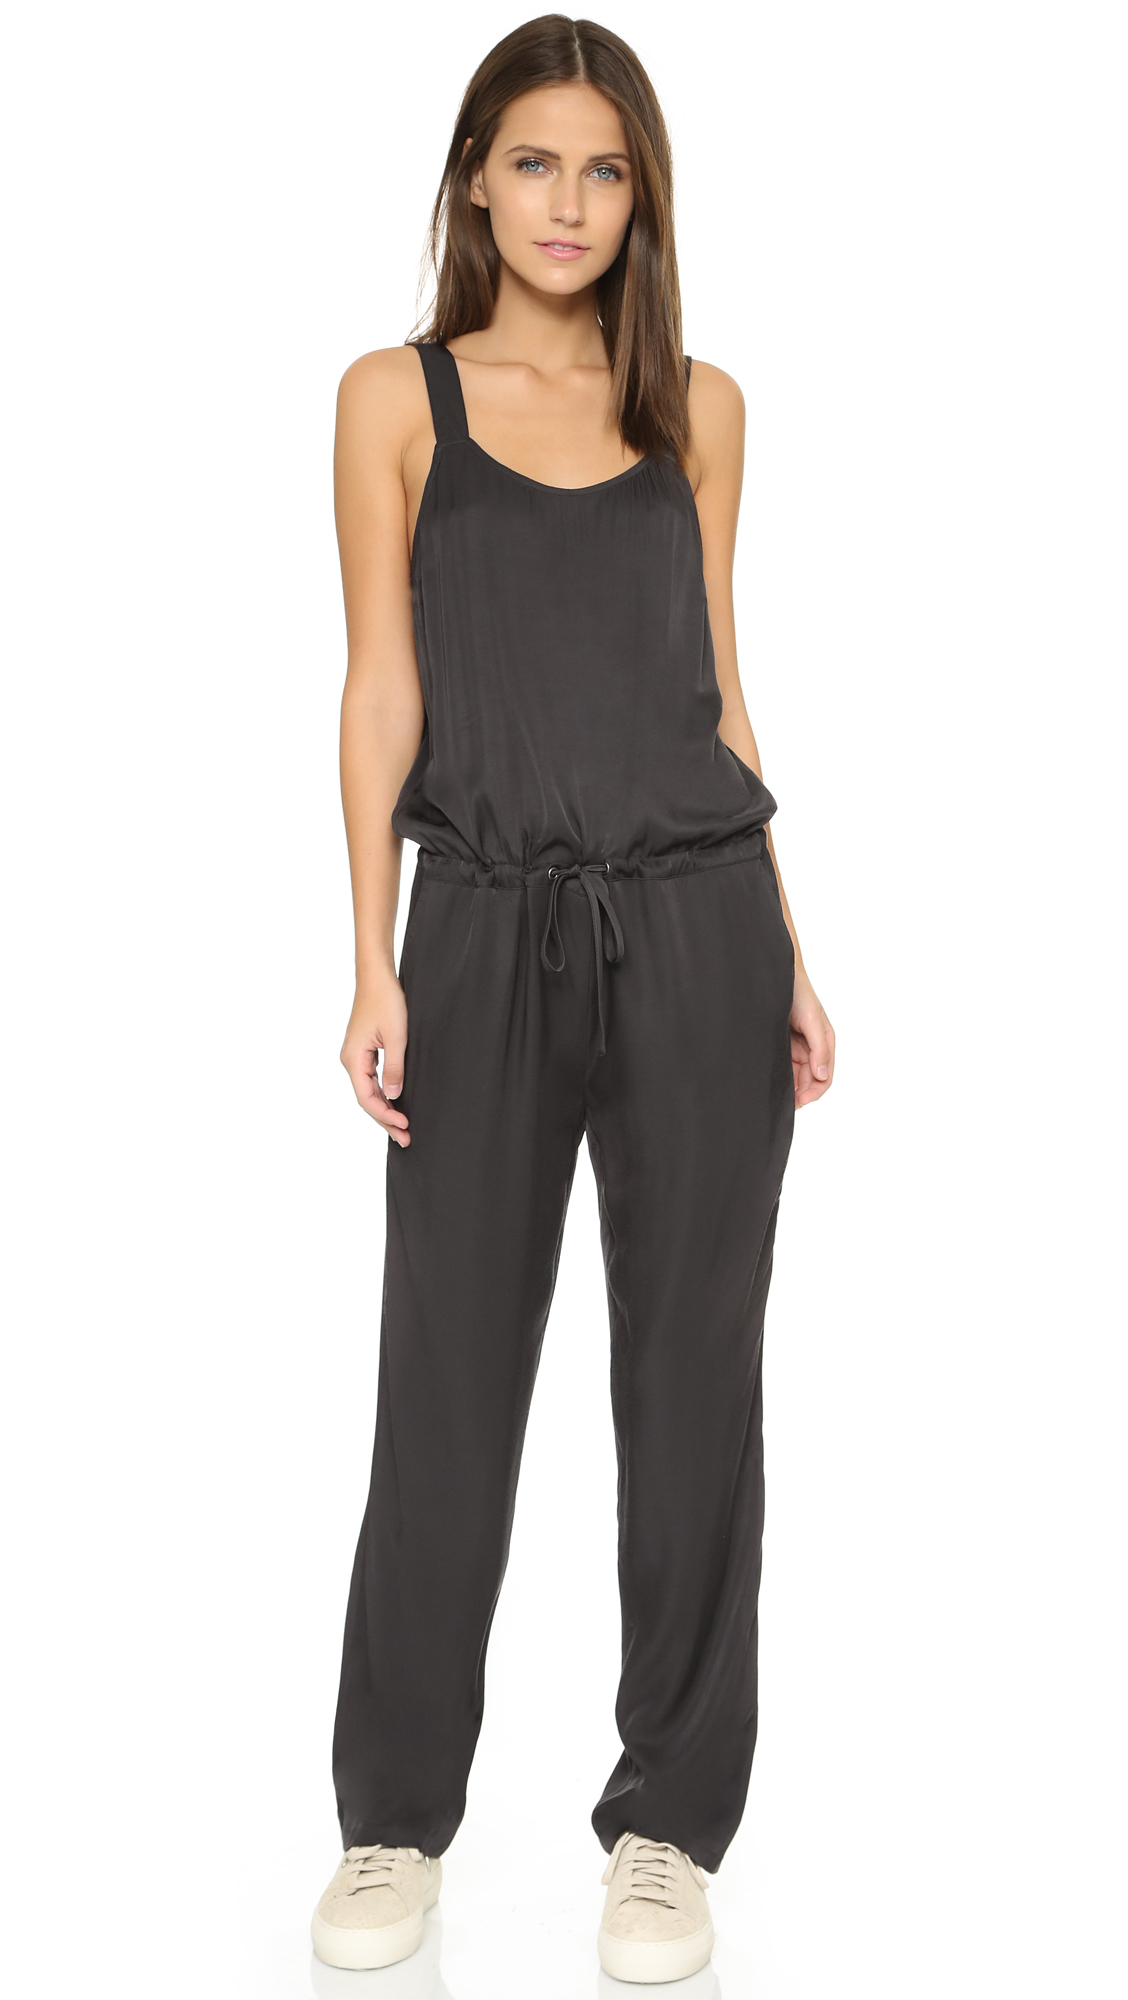 5d9a1cab7f Lyst - James Perse Viscose Twill Jumpsuit - Carbon in Black